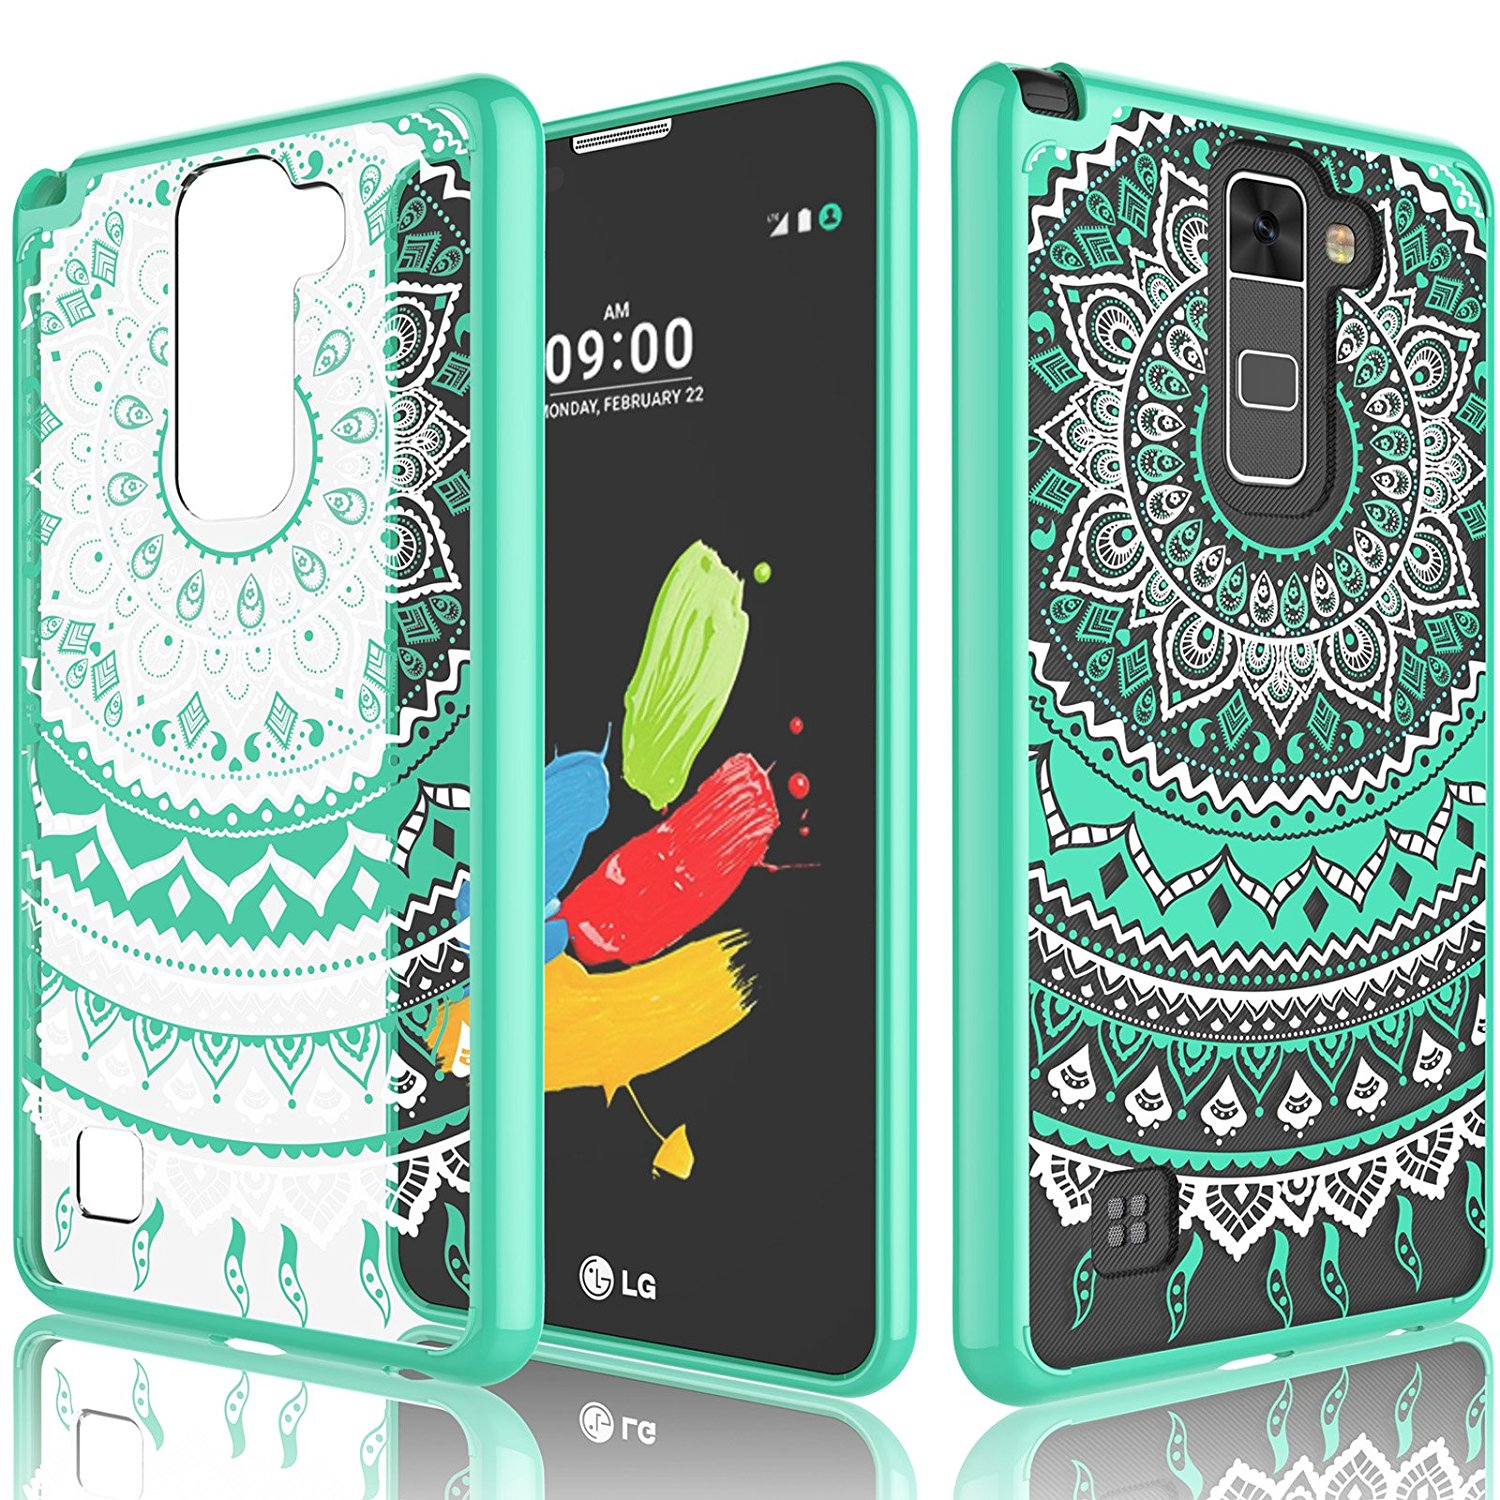 LG Stylus 2 Case, LG Stylo 2 Plus Case For Girls, Tekcoo [TFlower] Transparent Cute Lovely Adorable Ultra Thin Clear Hard TPU Skin Scratch-Proof Bumper Cases For LG Stylo 2 / Stylus 2V -Turquoise